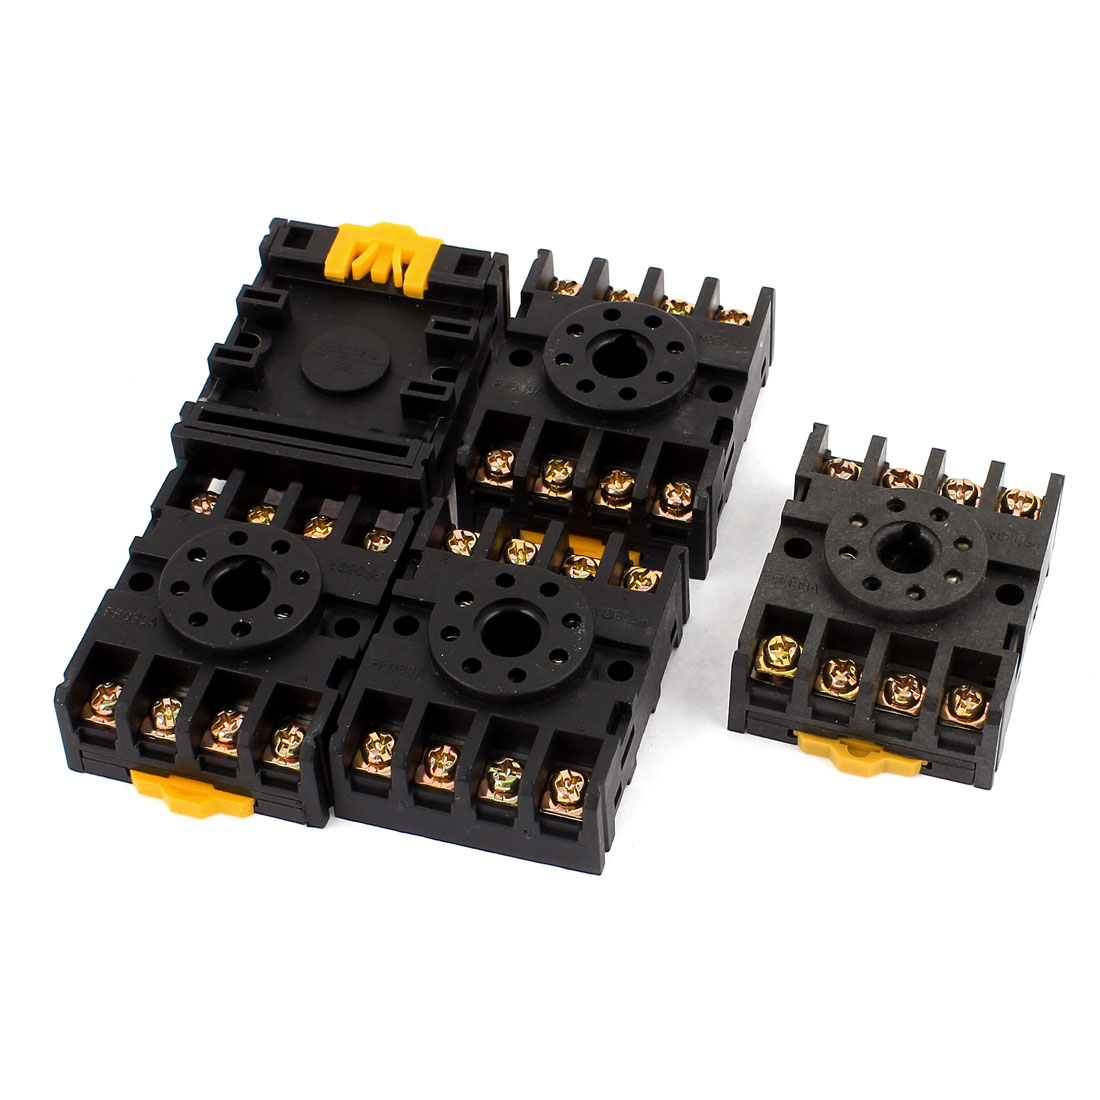 5 Pcs 8 Pin Power Timer Relay Socket Base Holder PF083A for JTX-2C DH48S